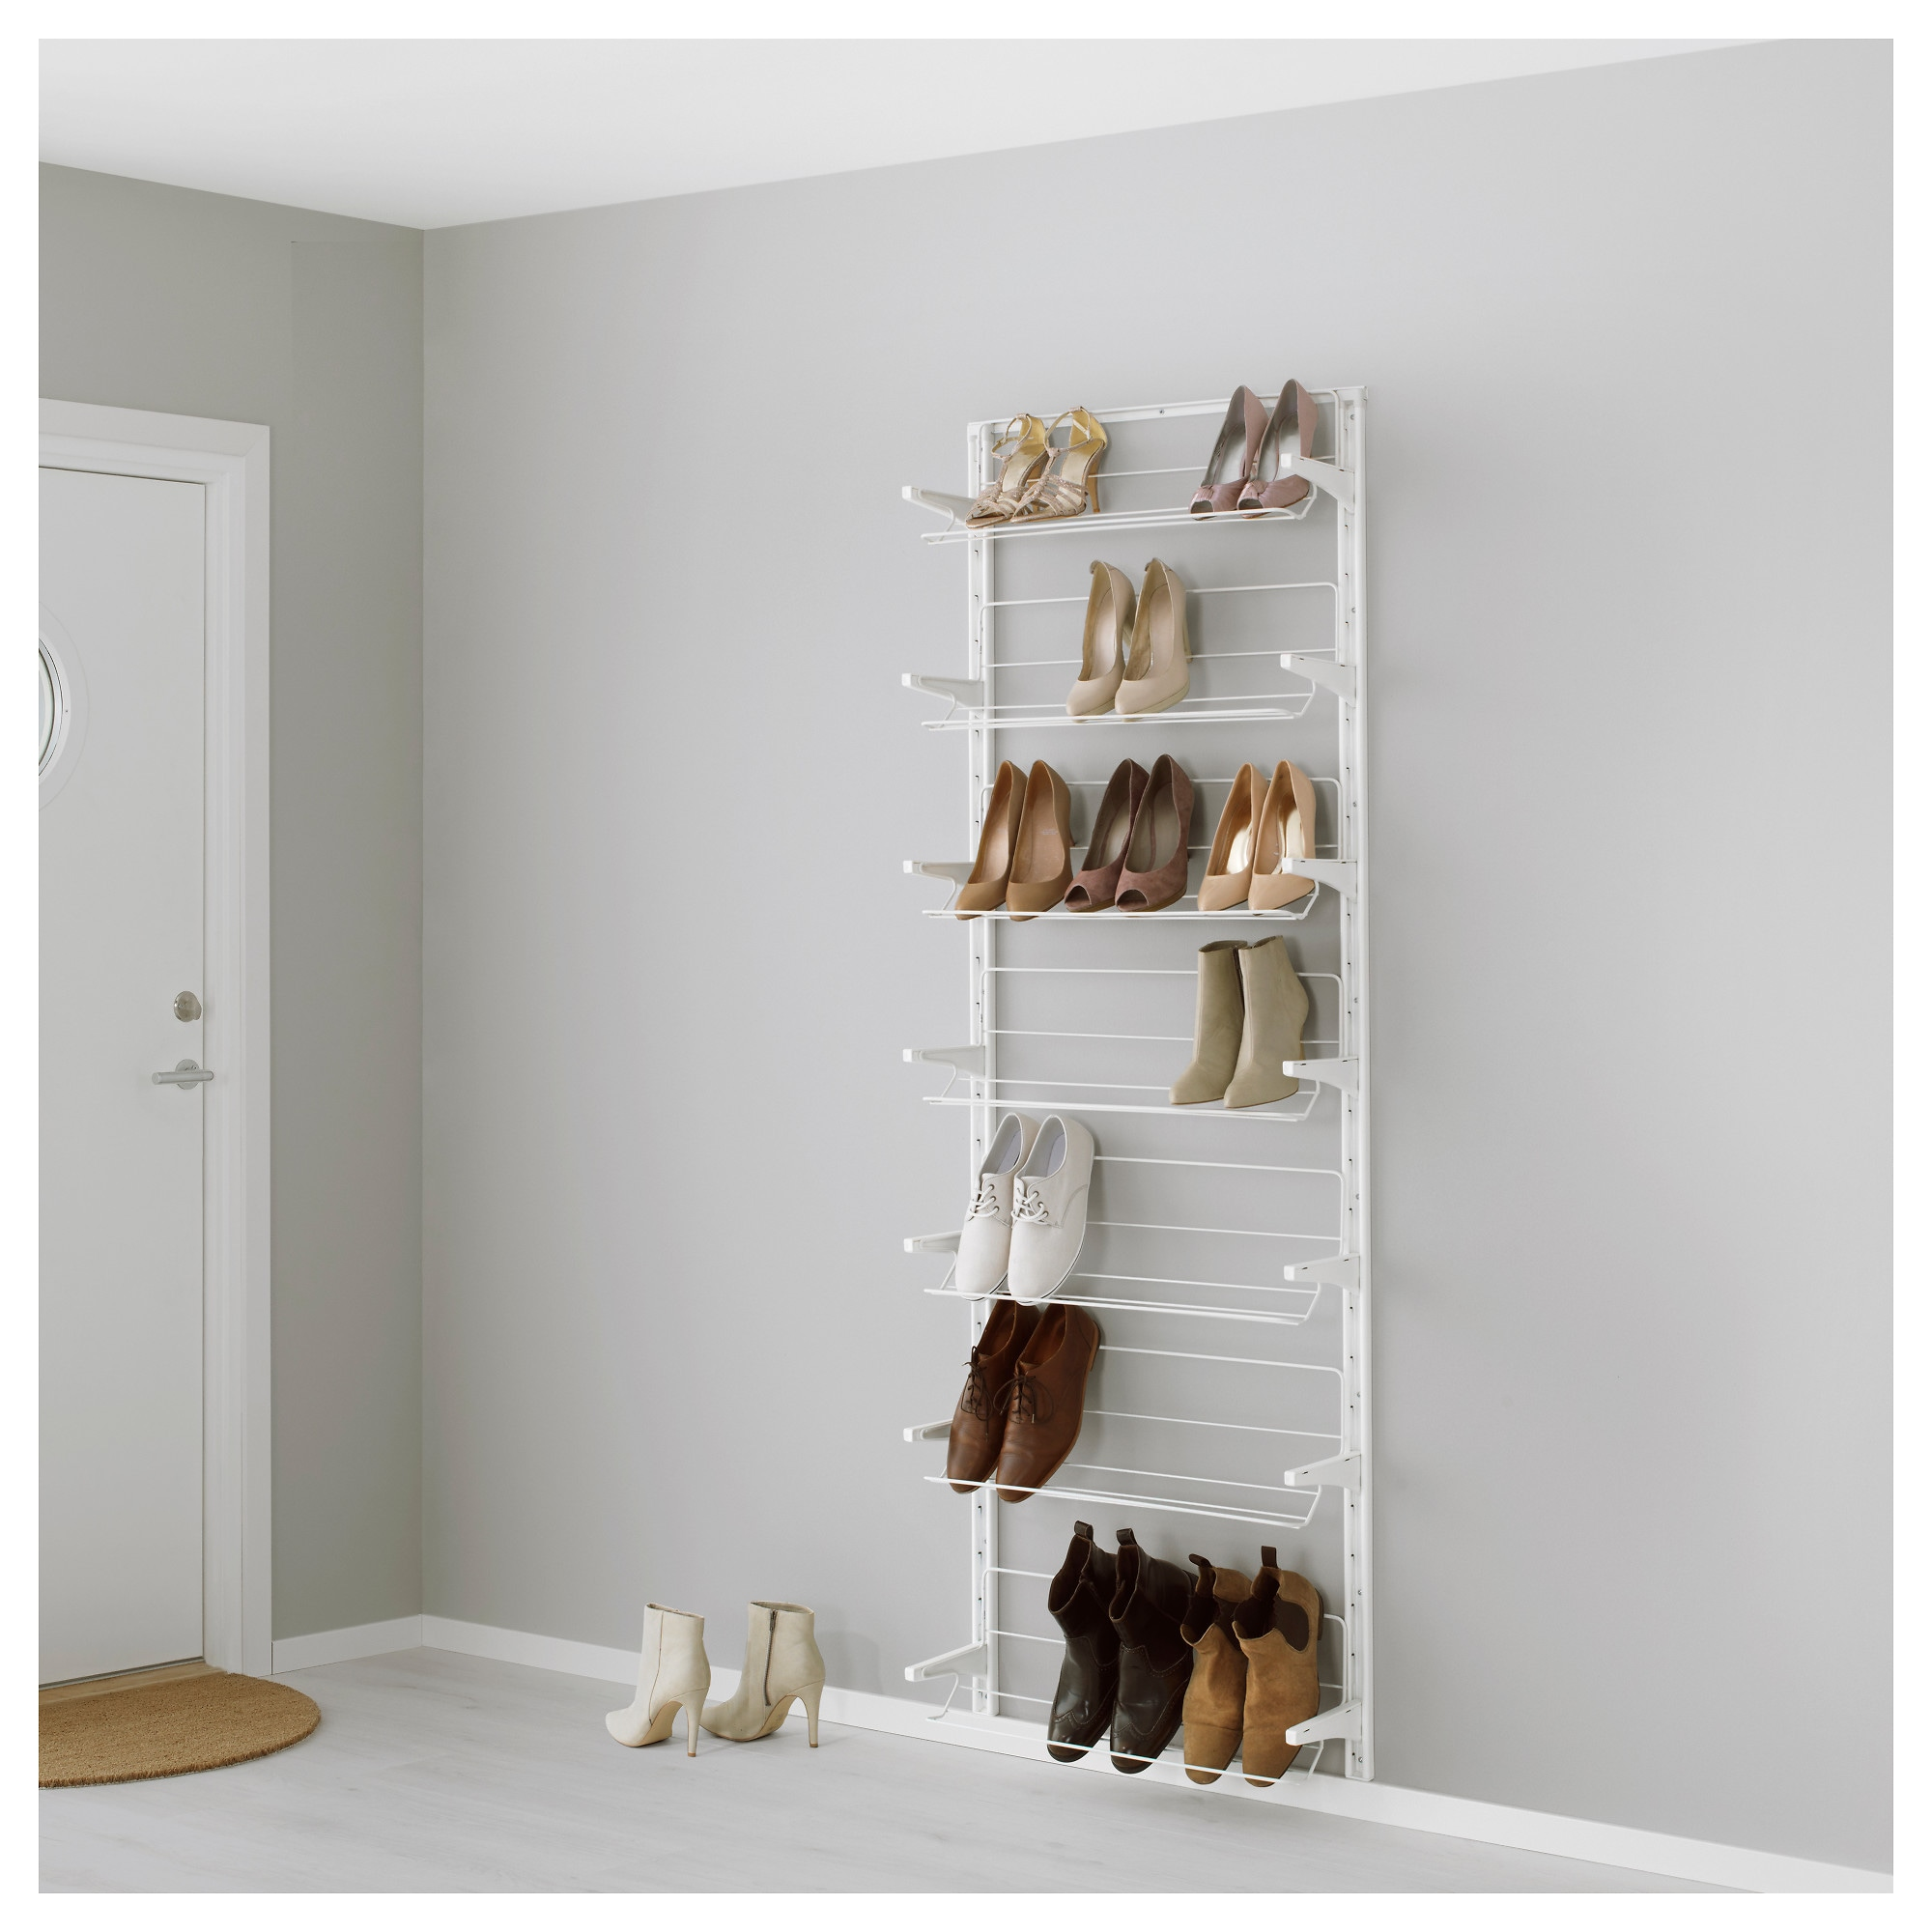 ALGOT Wall Upright/shoe Organizer   IKEA